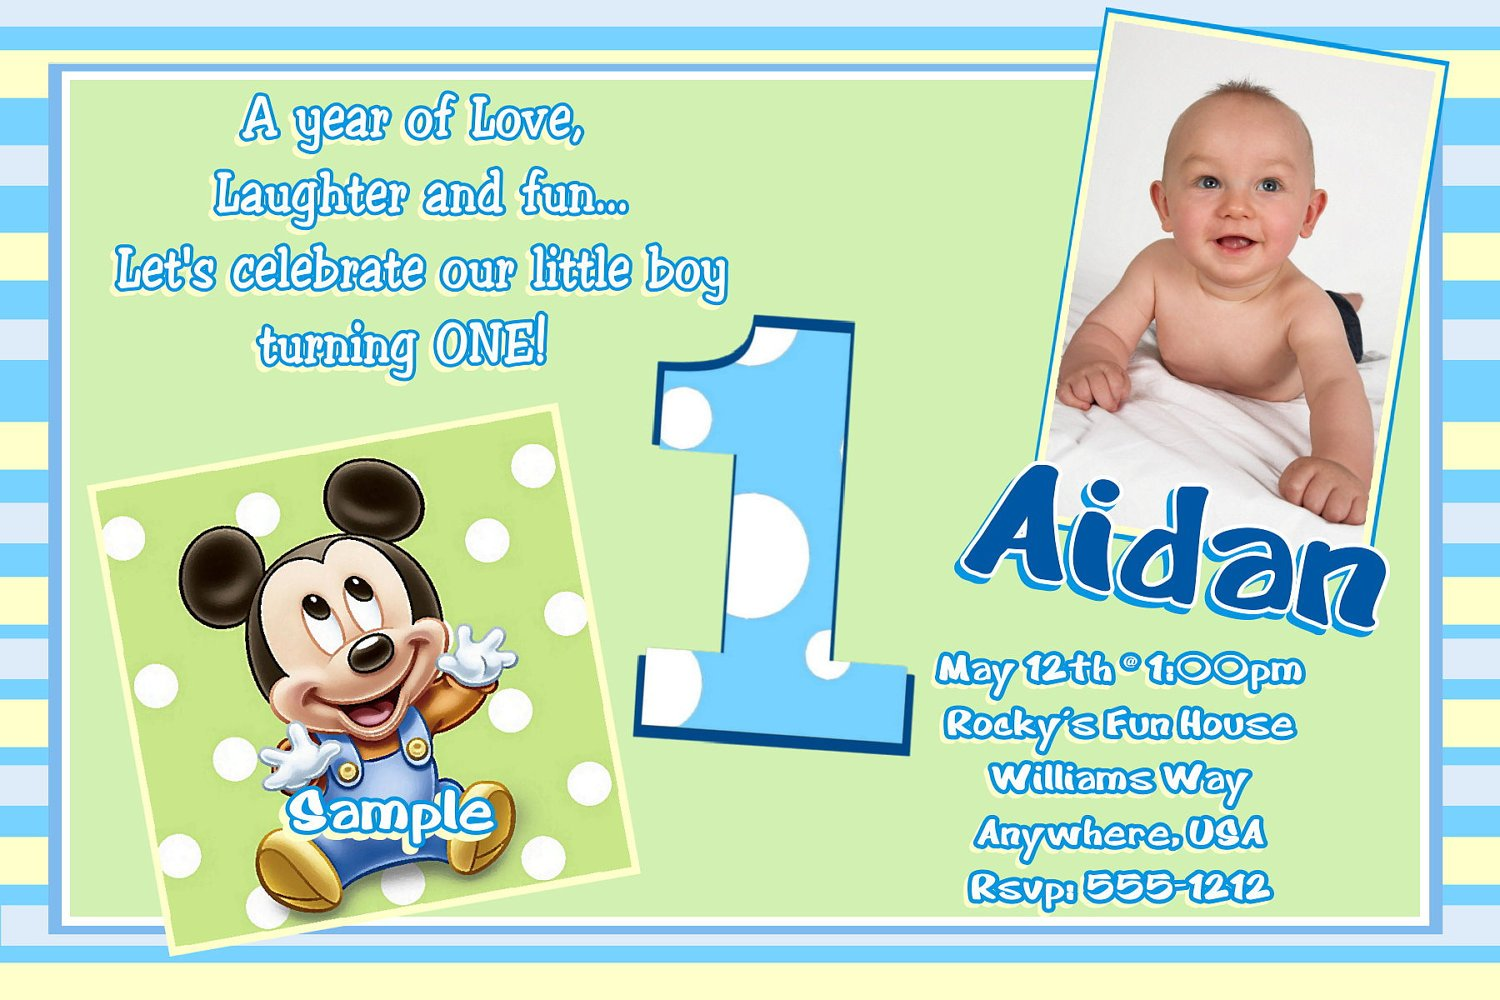 Mickey Mouse Birthday Invitation was good invitations template